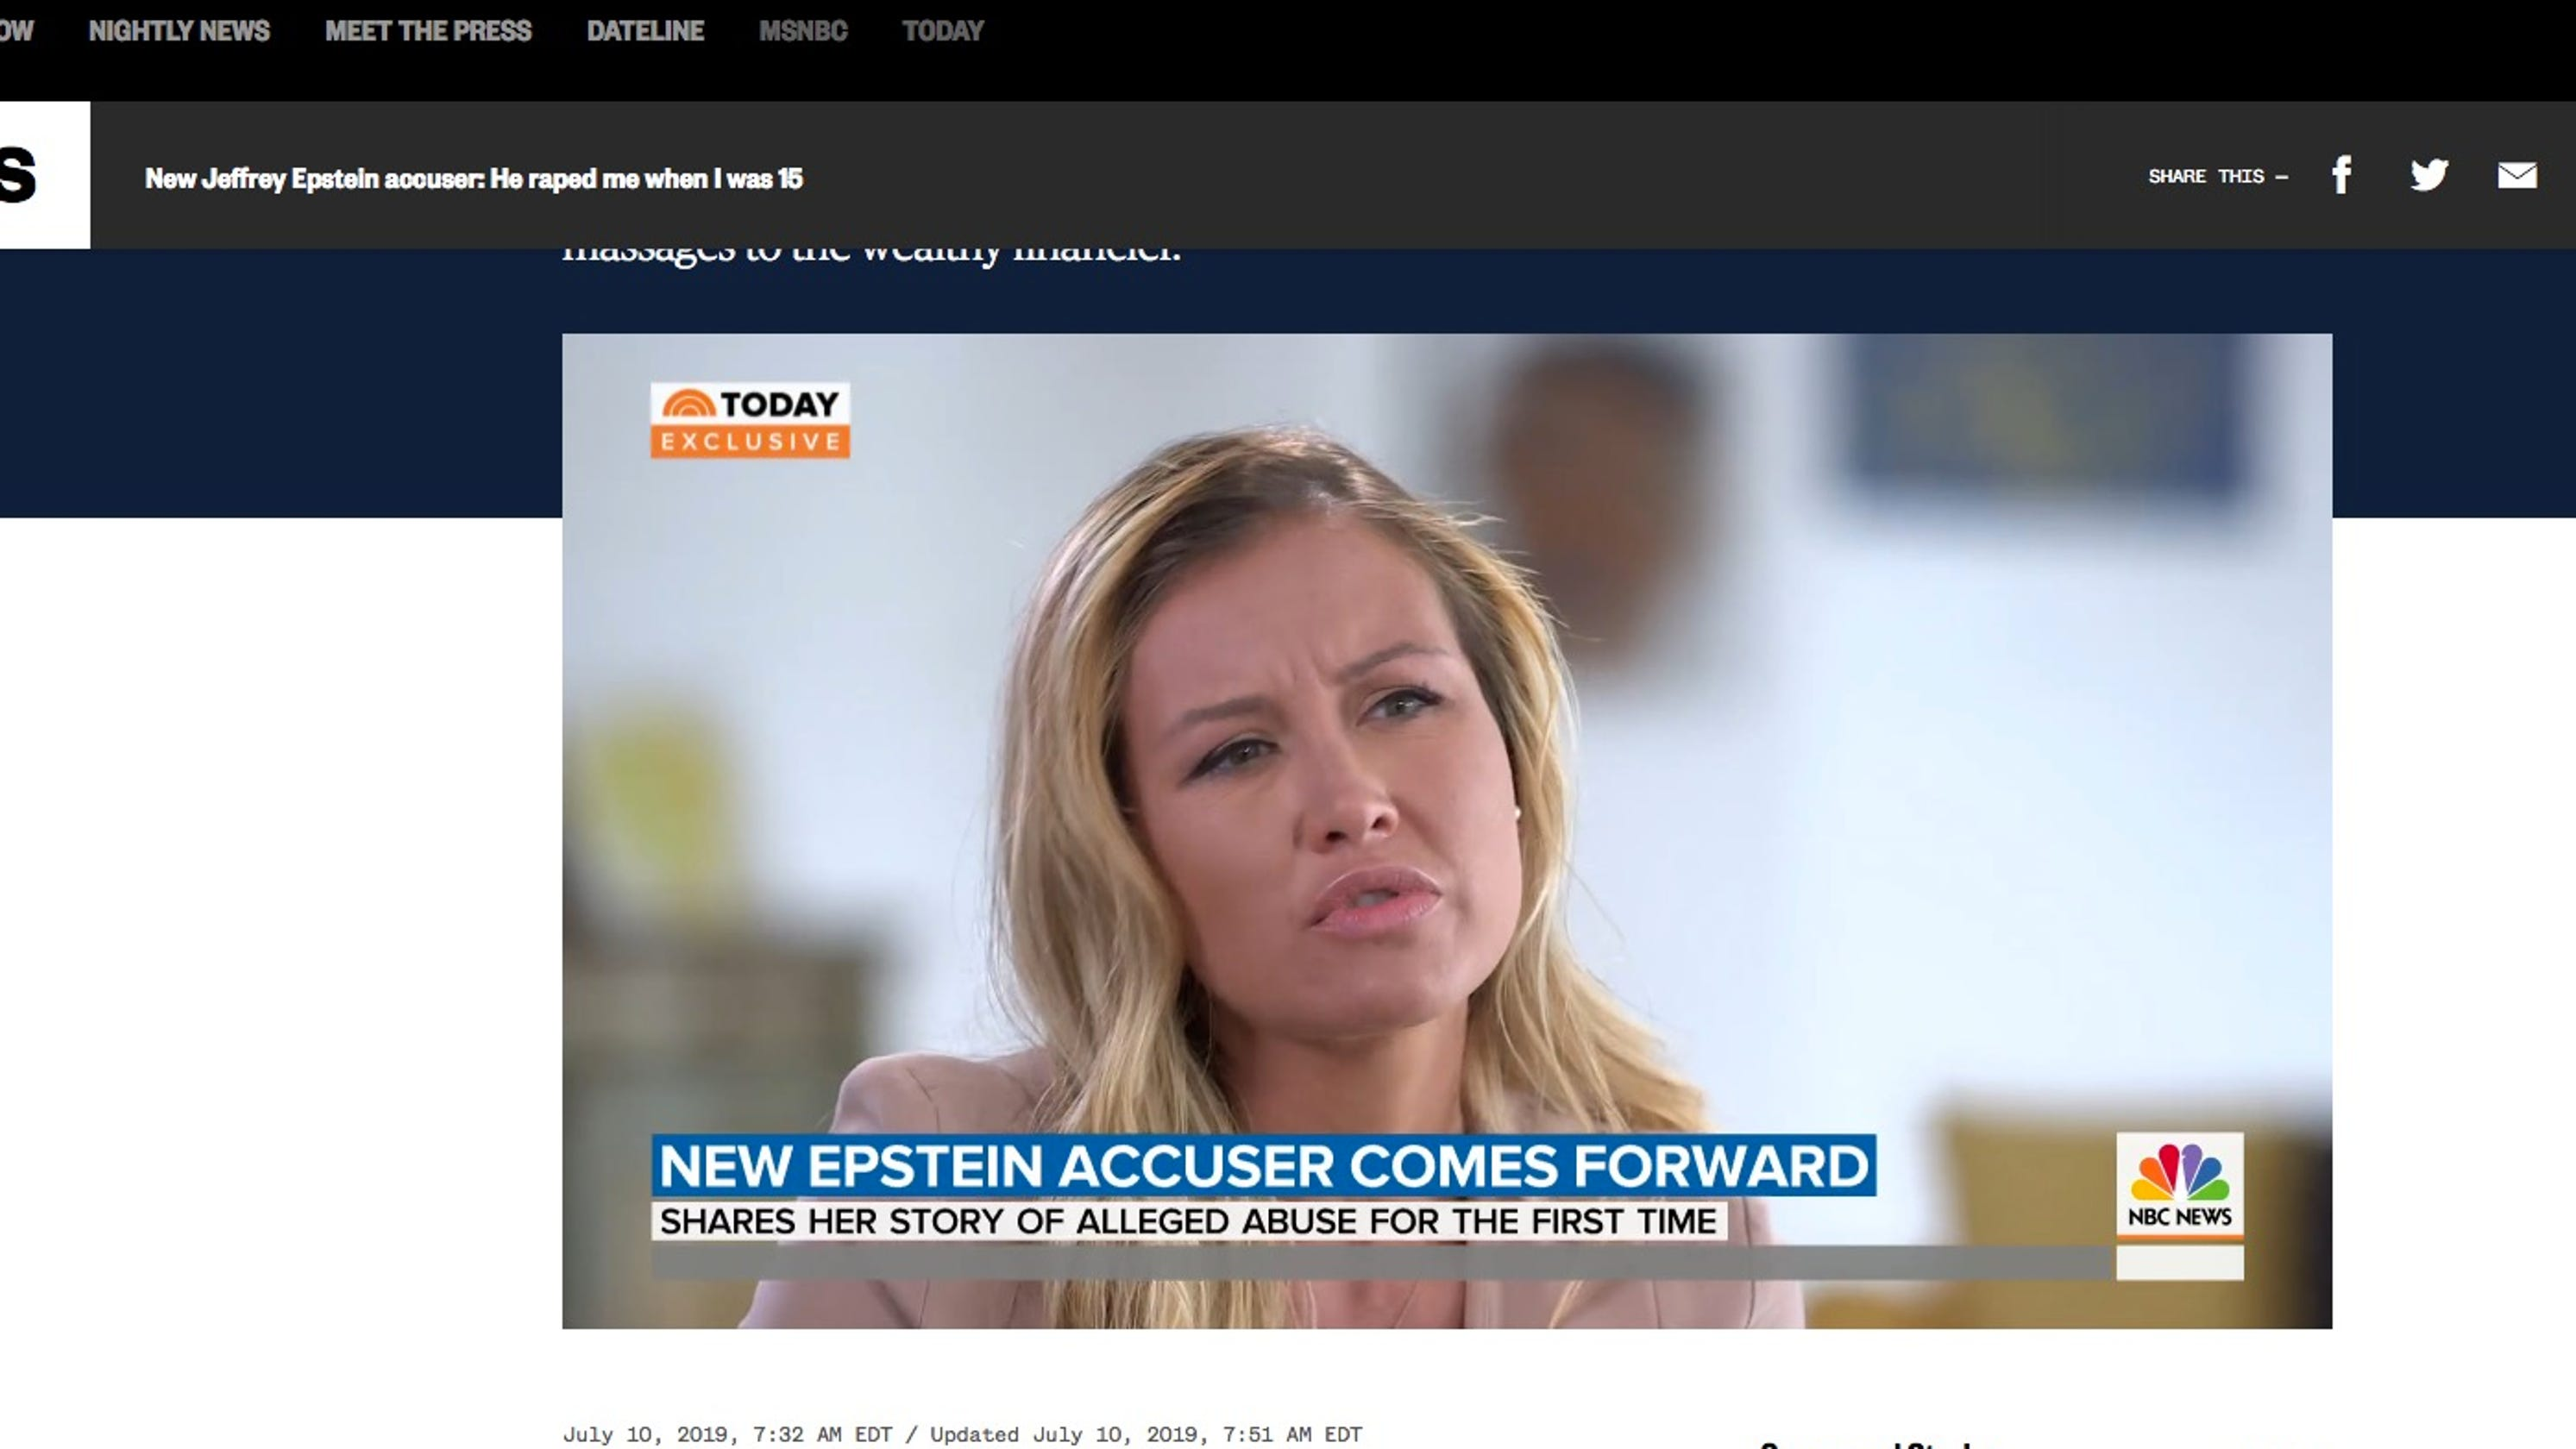 Jennifer Araoz says she was 15 when Epstein 'forcibly ...